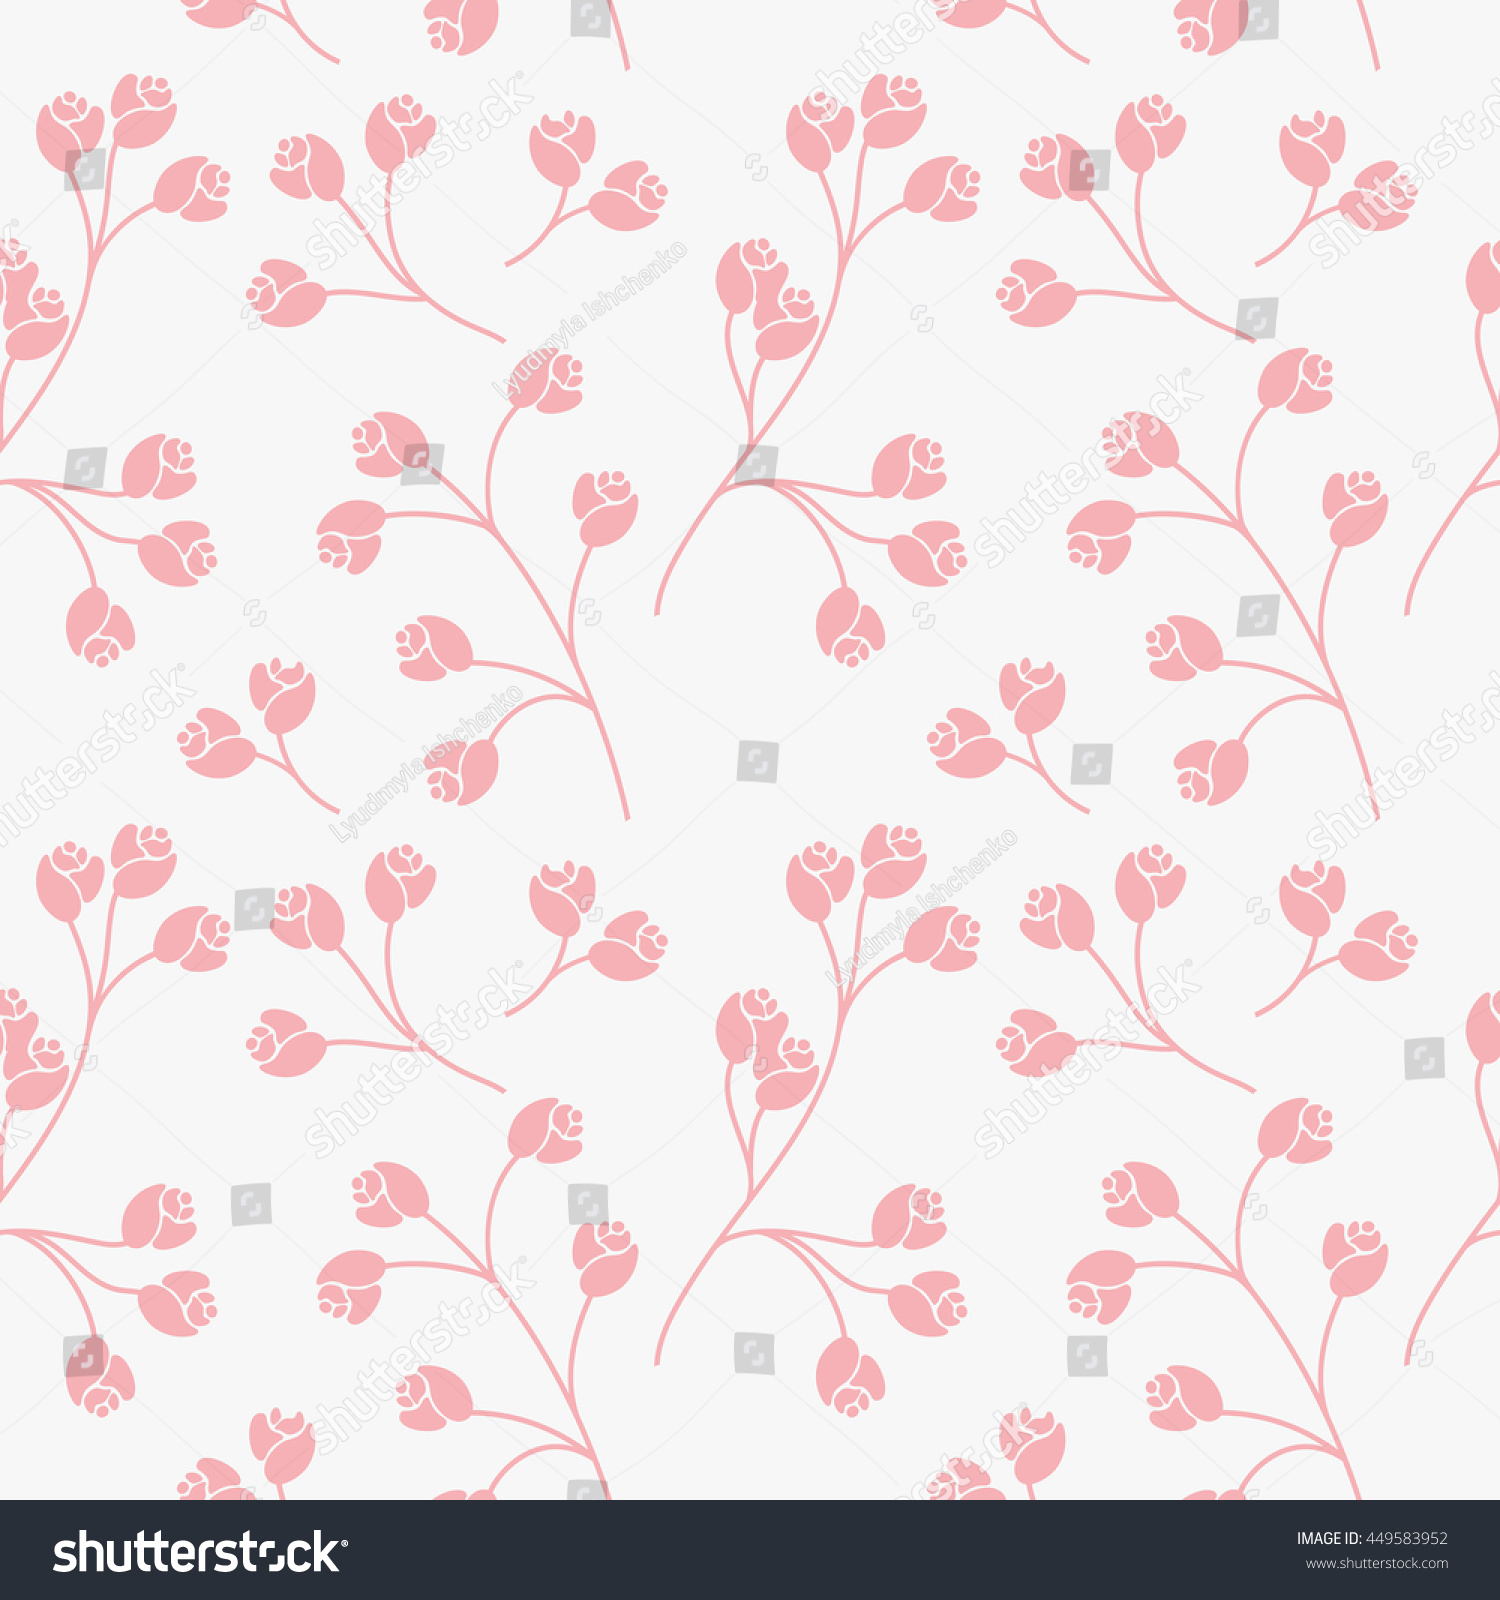 Abstract Elegance Seamless Texture With Floral Background Vintage Pattern From Flowers Wallpaper